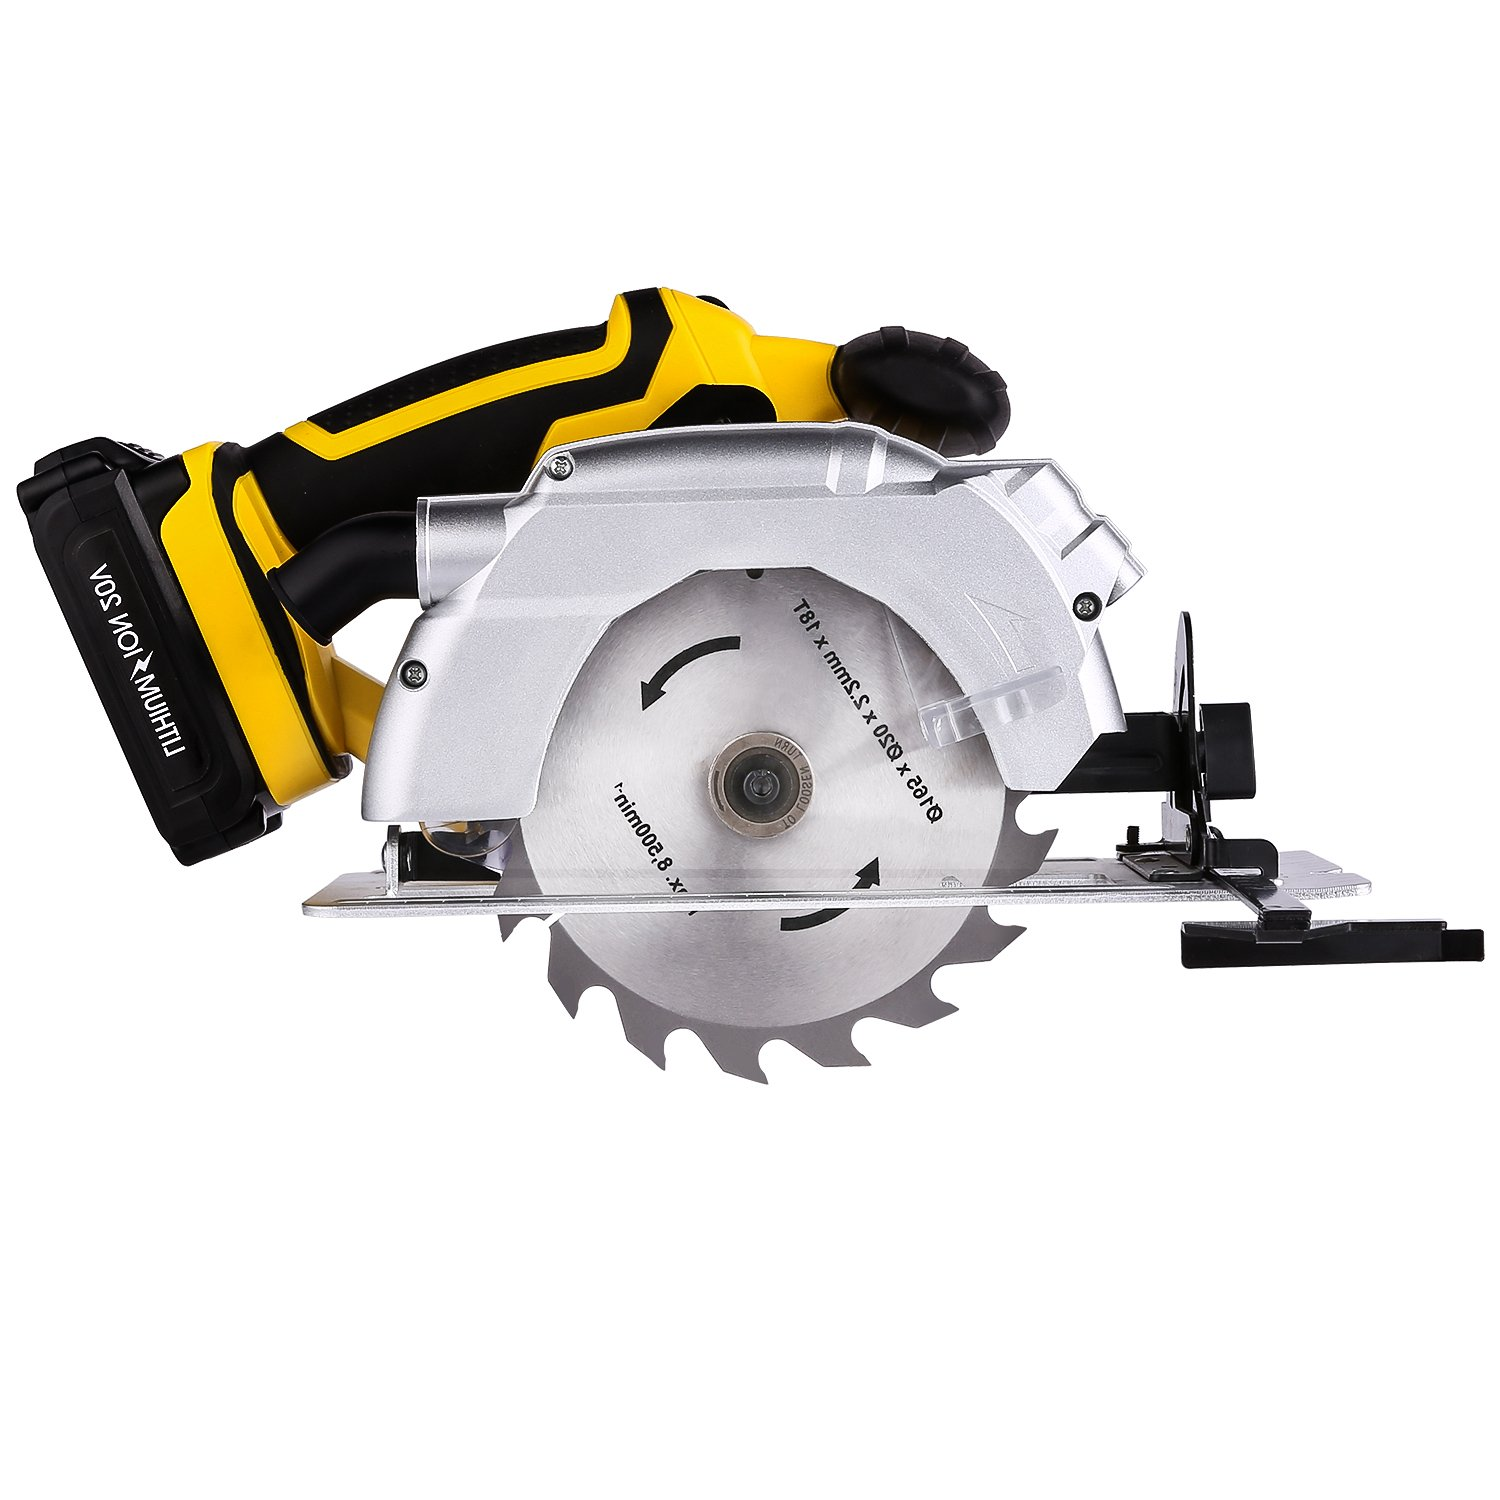 20V 6 1/2'' 7000 RPM Cordless Circular Saw with Laser Guide, Lightweight Wood Cutting Tools Electric Hand Circular Saw (5203-Cordless Circular Saw)